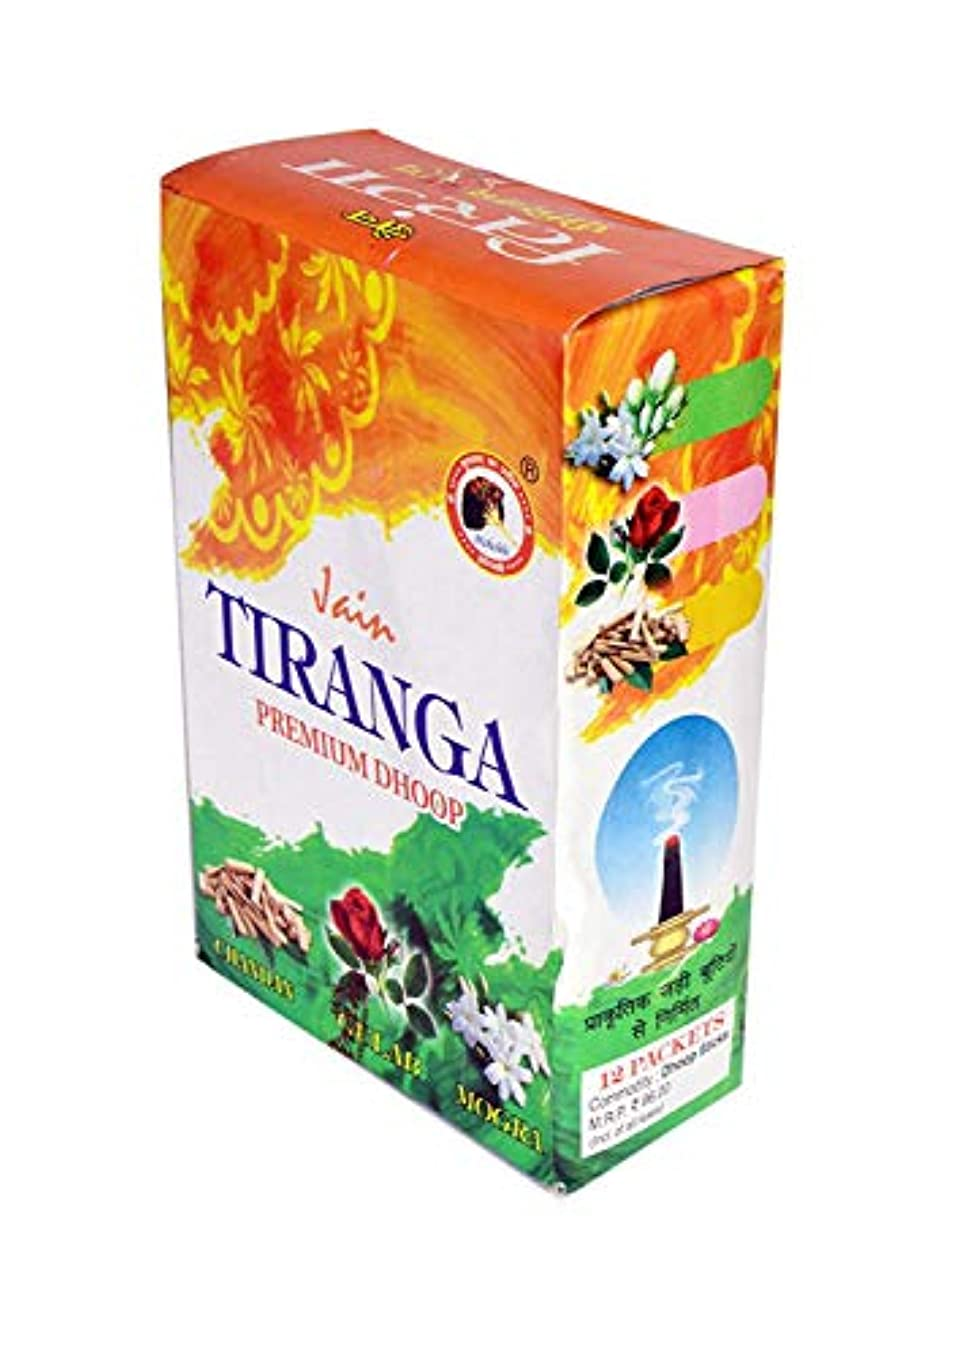 エンジニアリング収容する生じるJain Tiranga Dhoop Chandan Fragrance (1 Box=12 Packets)